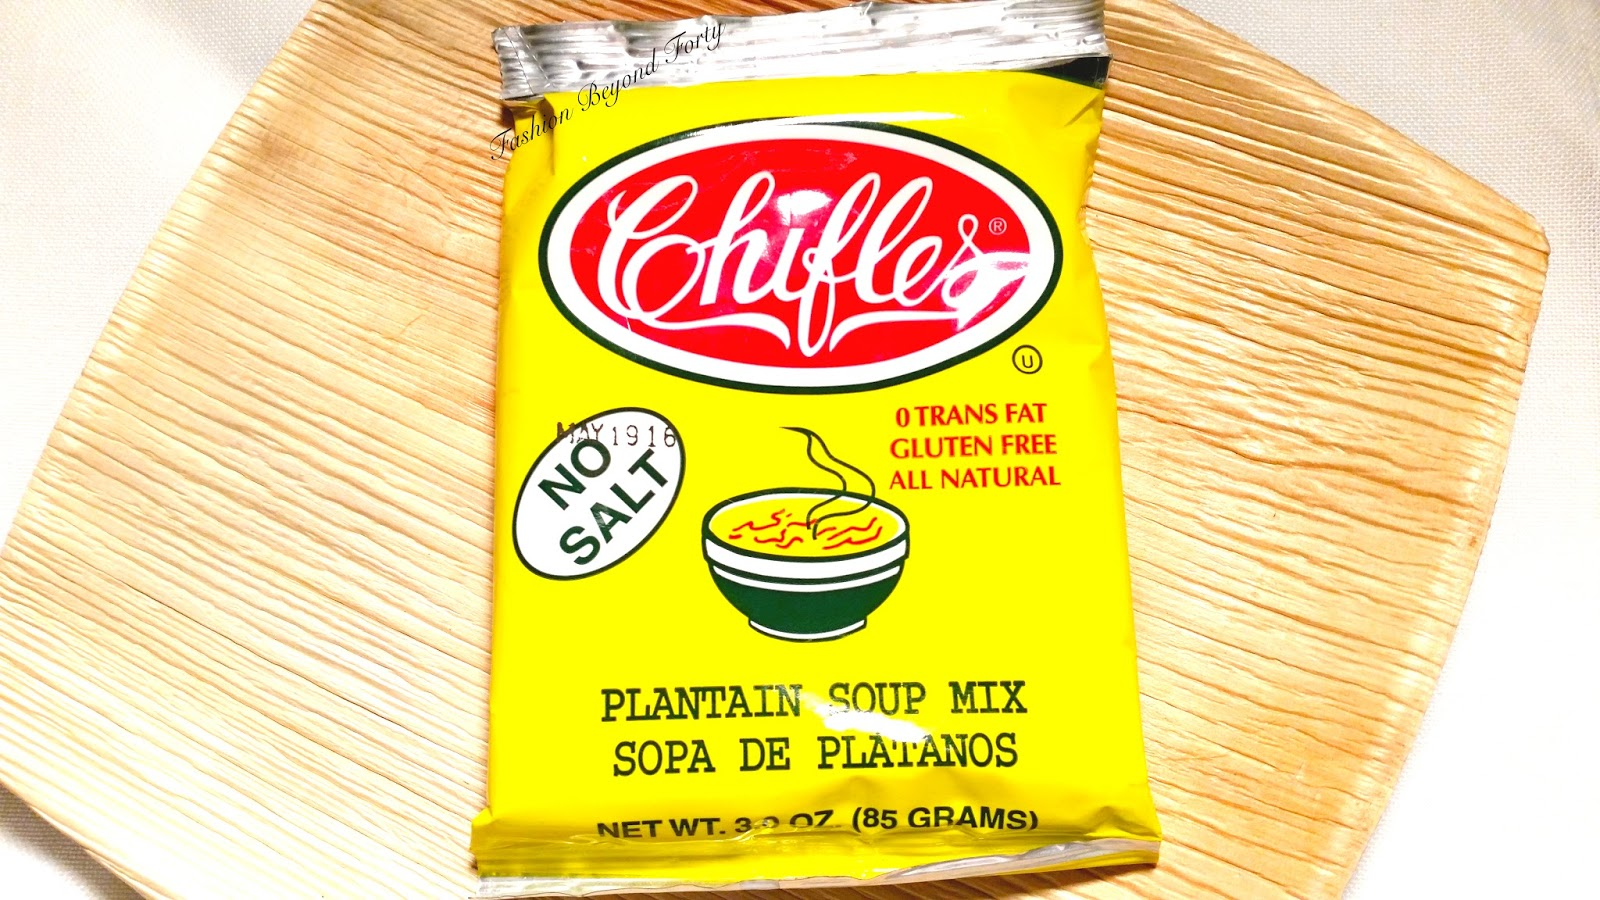 Chifles Plantain Soup Mix in the Auela Mami Cuban Subscription Box